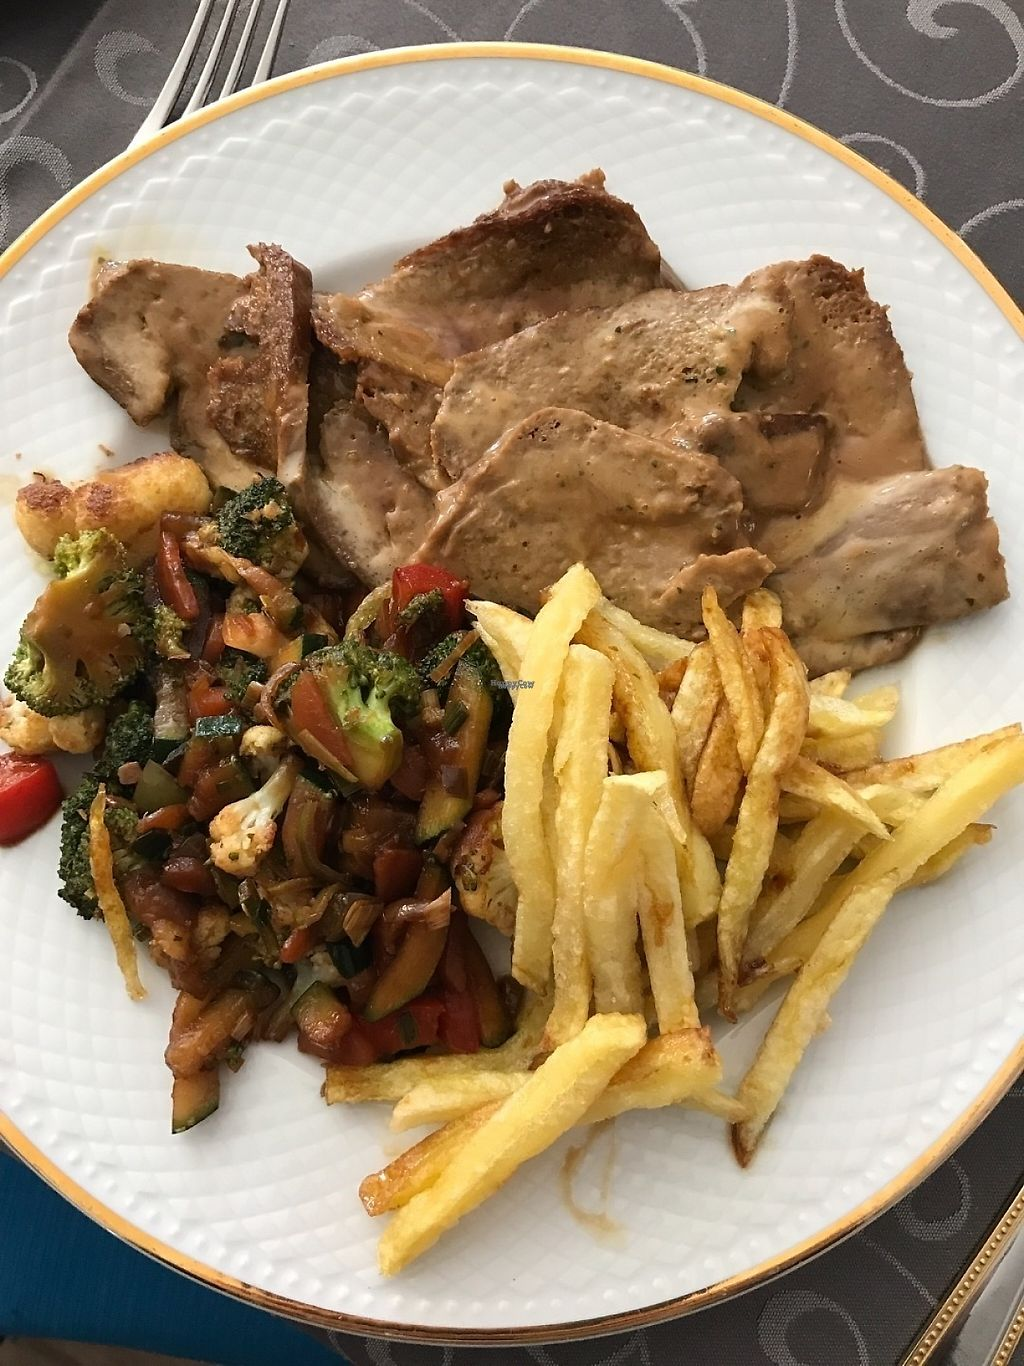 """Photo of Taskatenda  by <a href=""""/members/profile/Kevtool"""">Kevtool</a> <br/>Seitan with chips and vegetables <br/> March 24, 2017  - <a href='/contact/abuse/image/89143/240328'>Report</a>"""